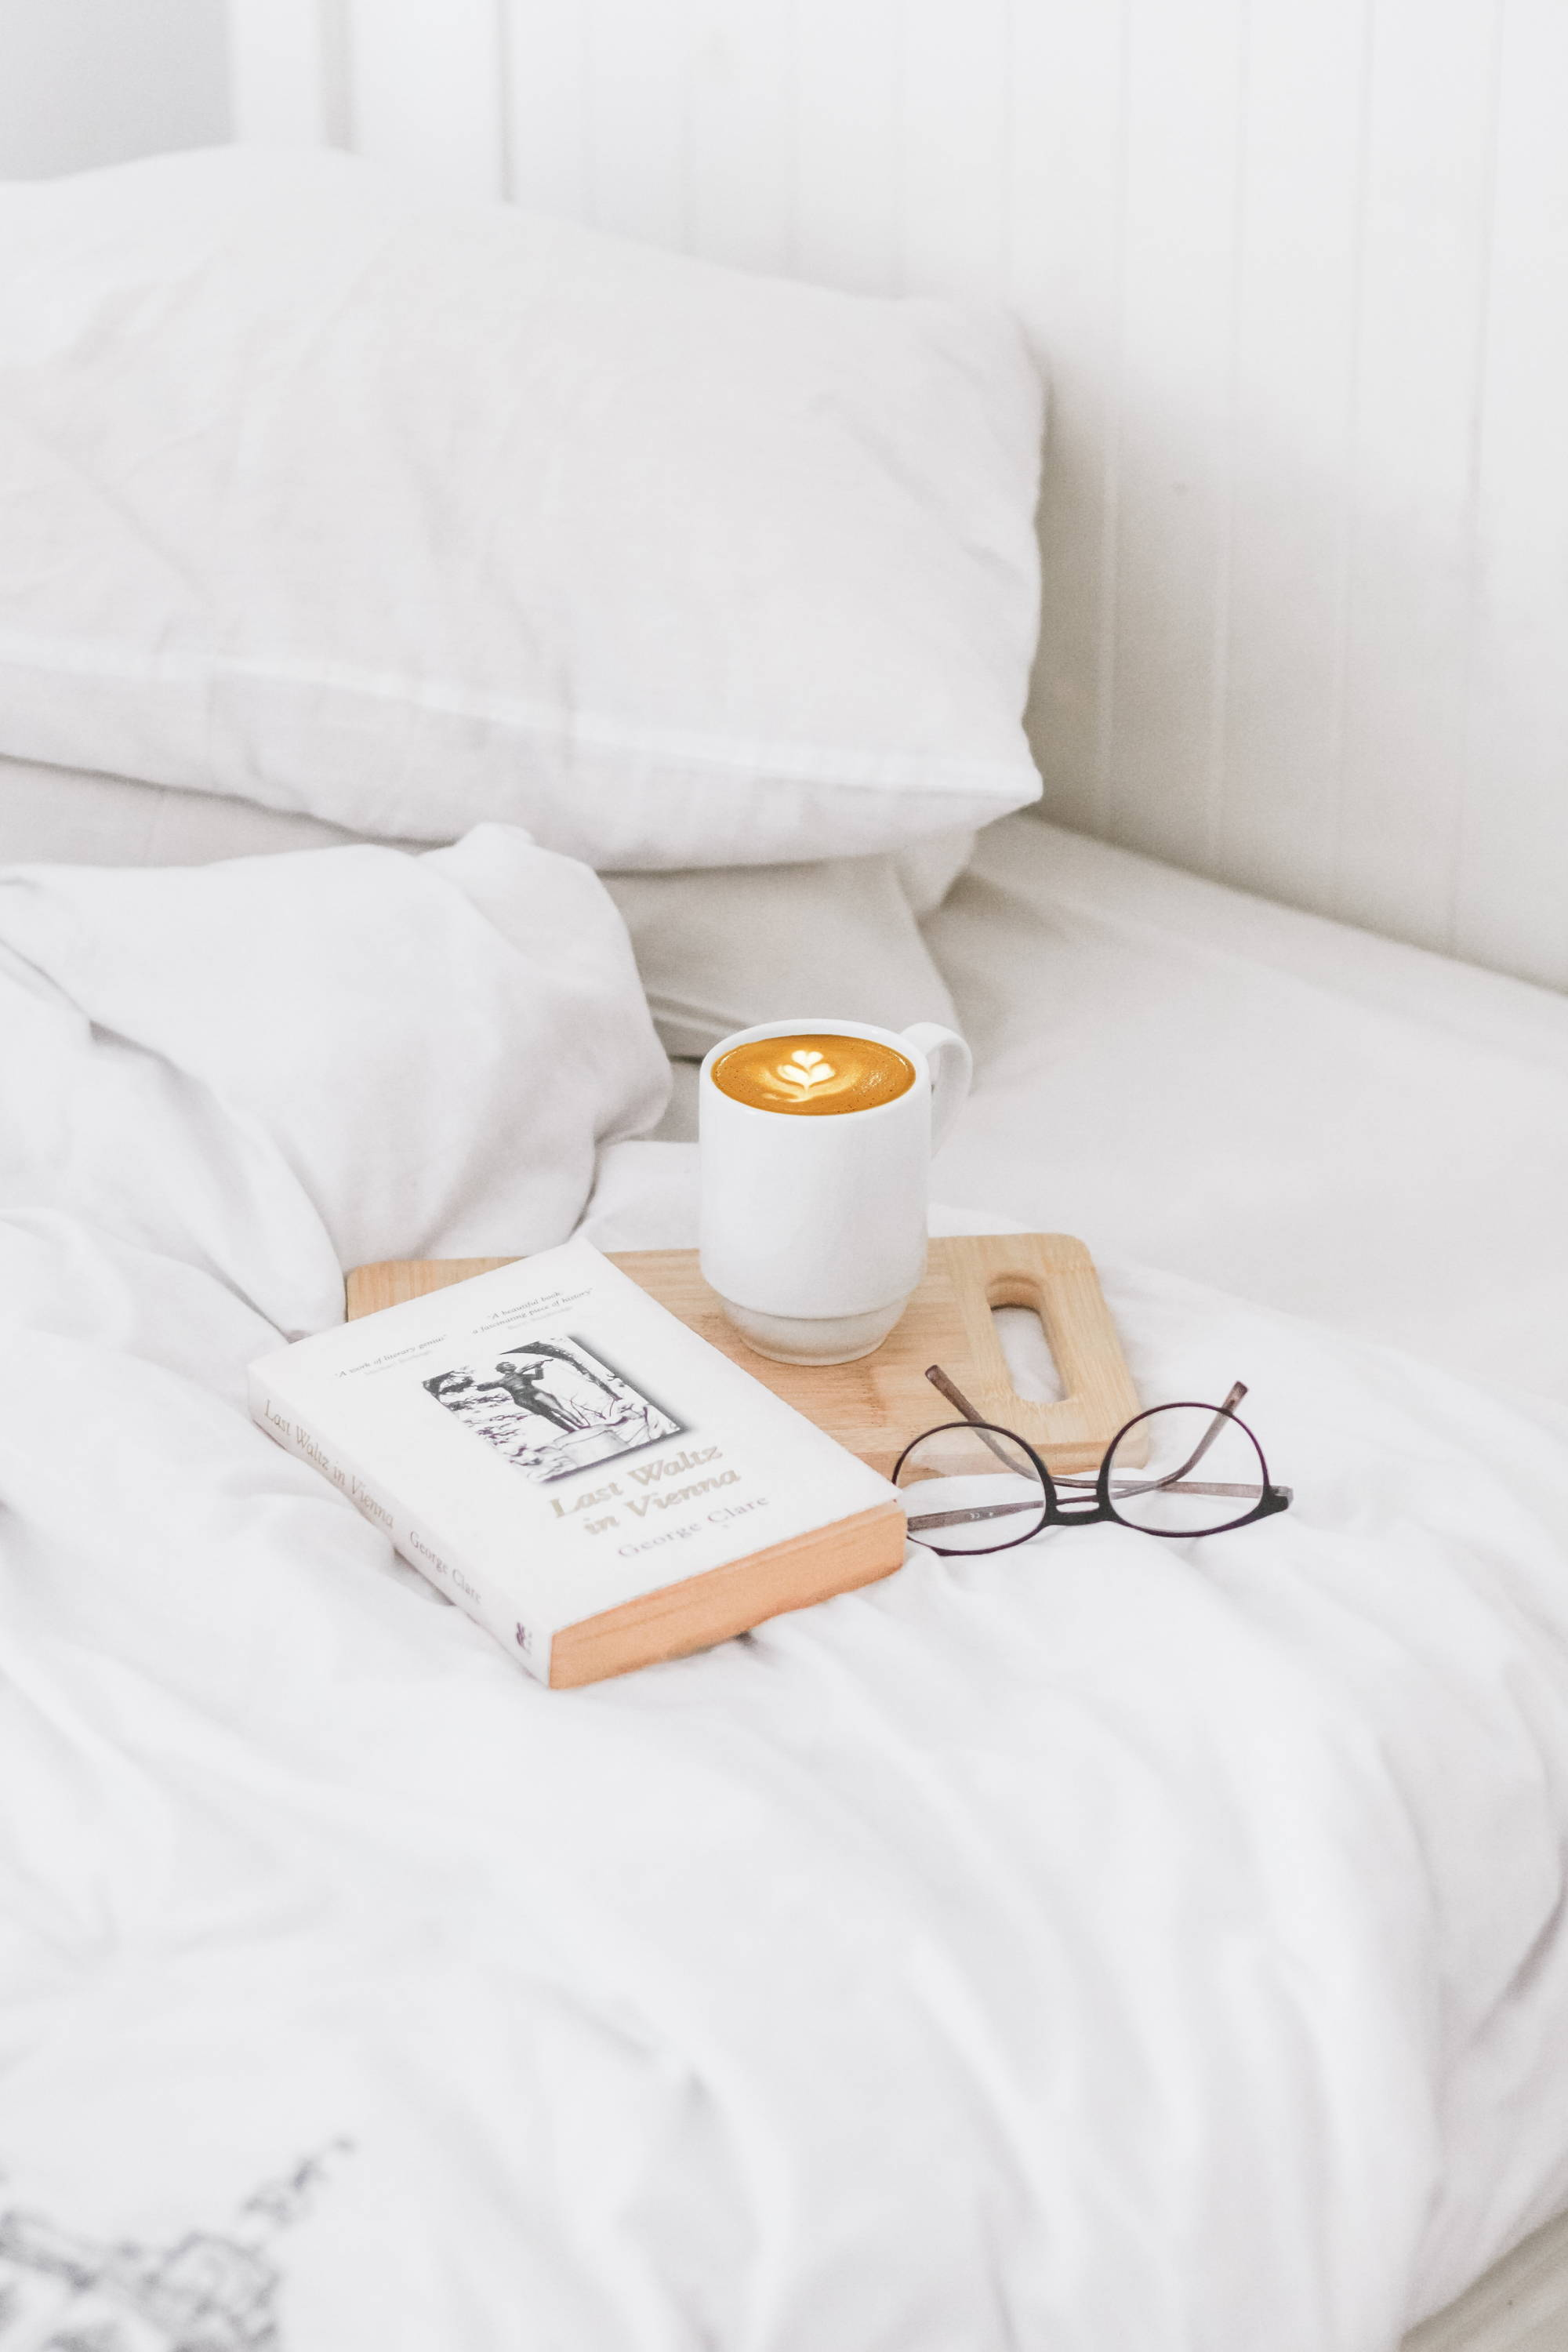 A cup of coffee, book, and reading glasses on a bed with eucalypso eucalyptus sheets